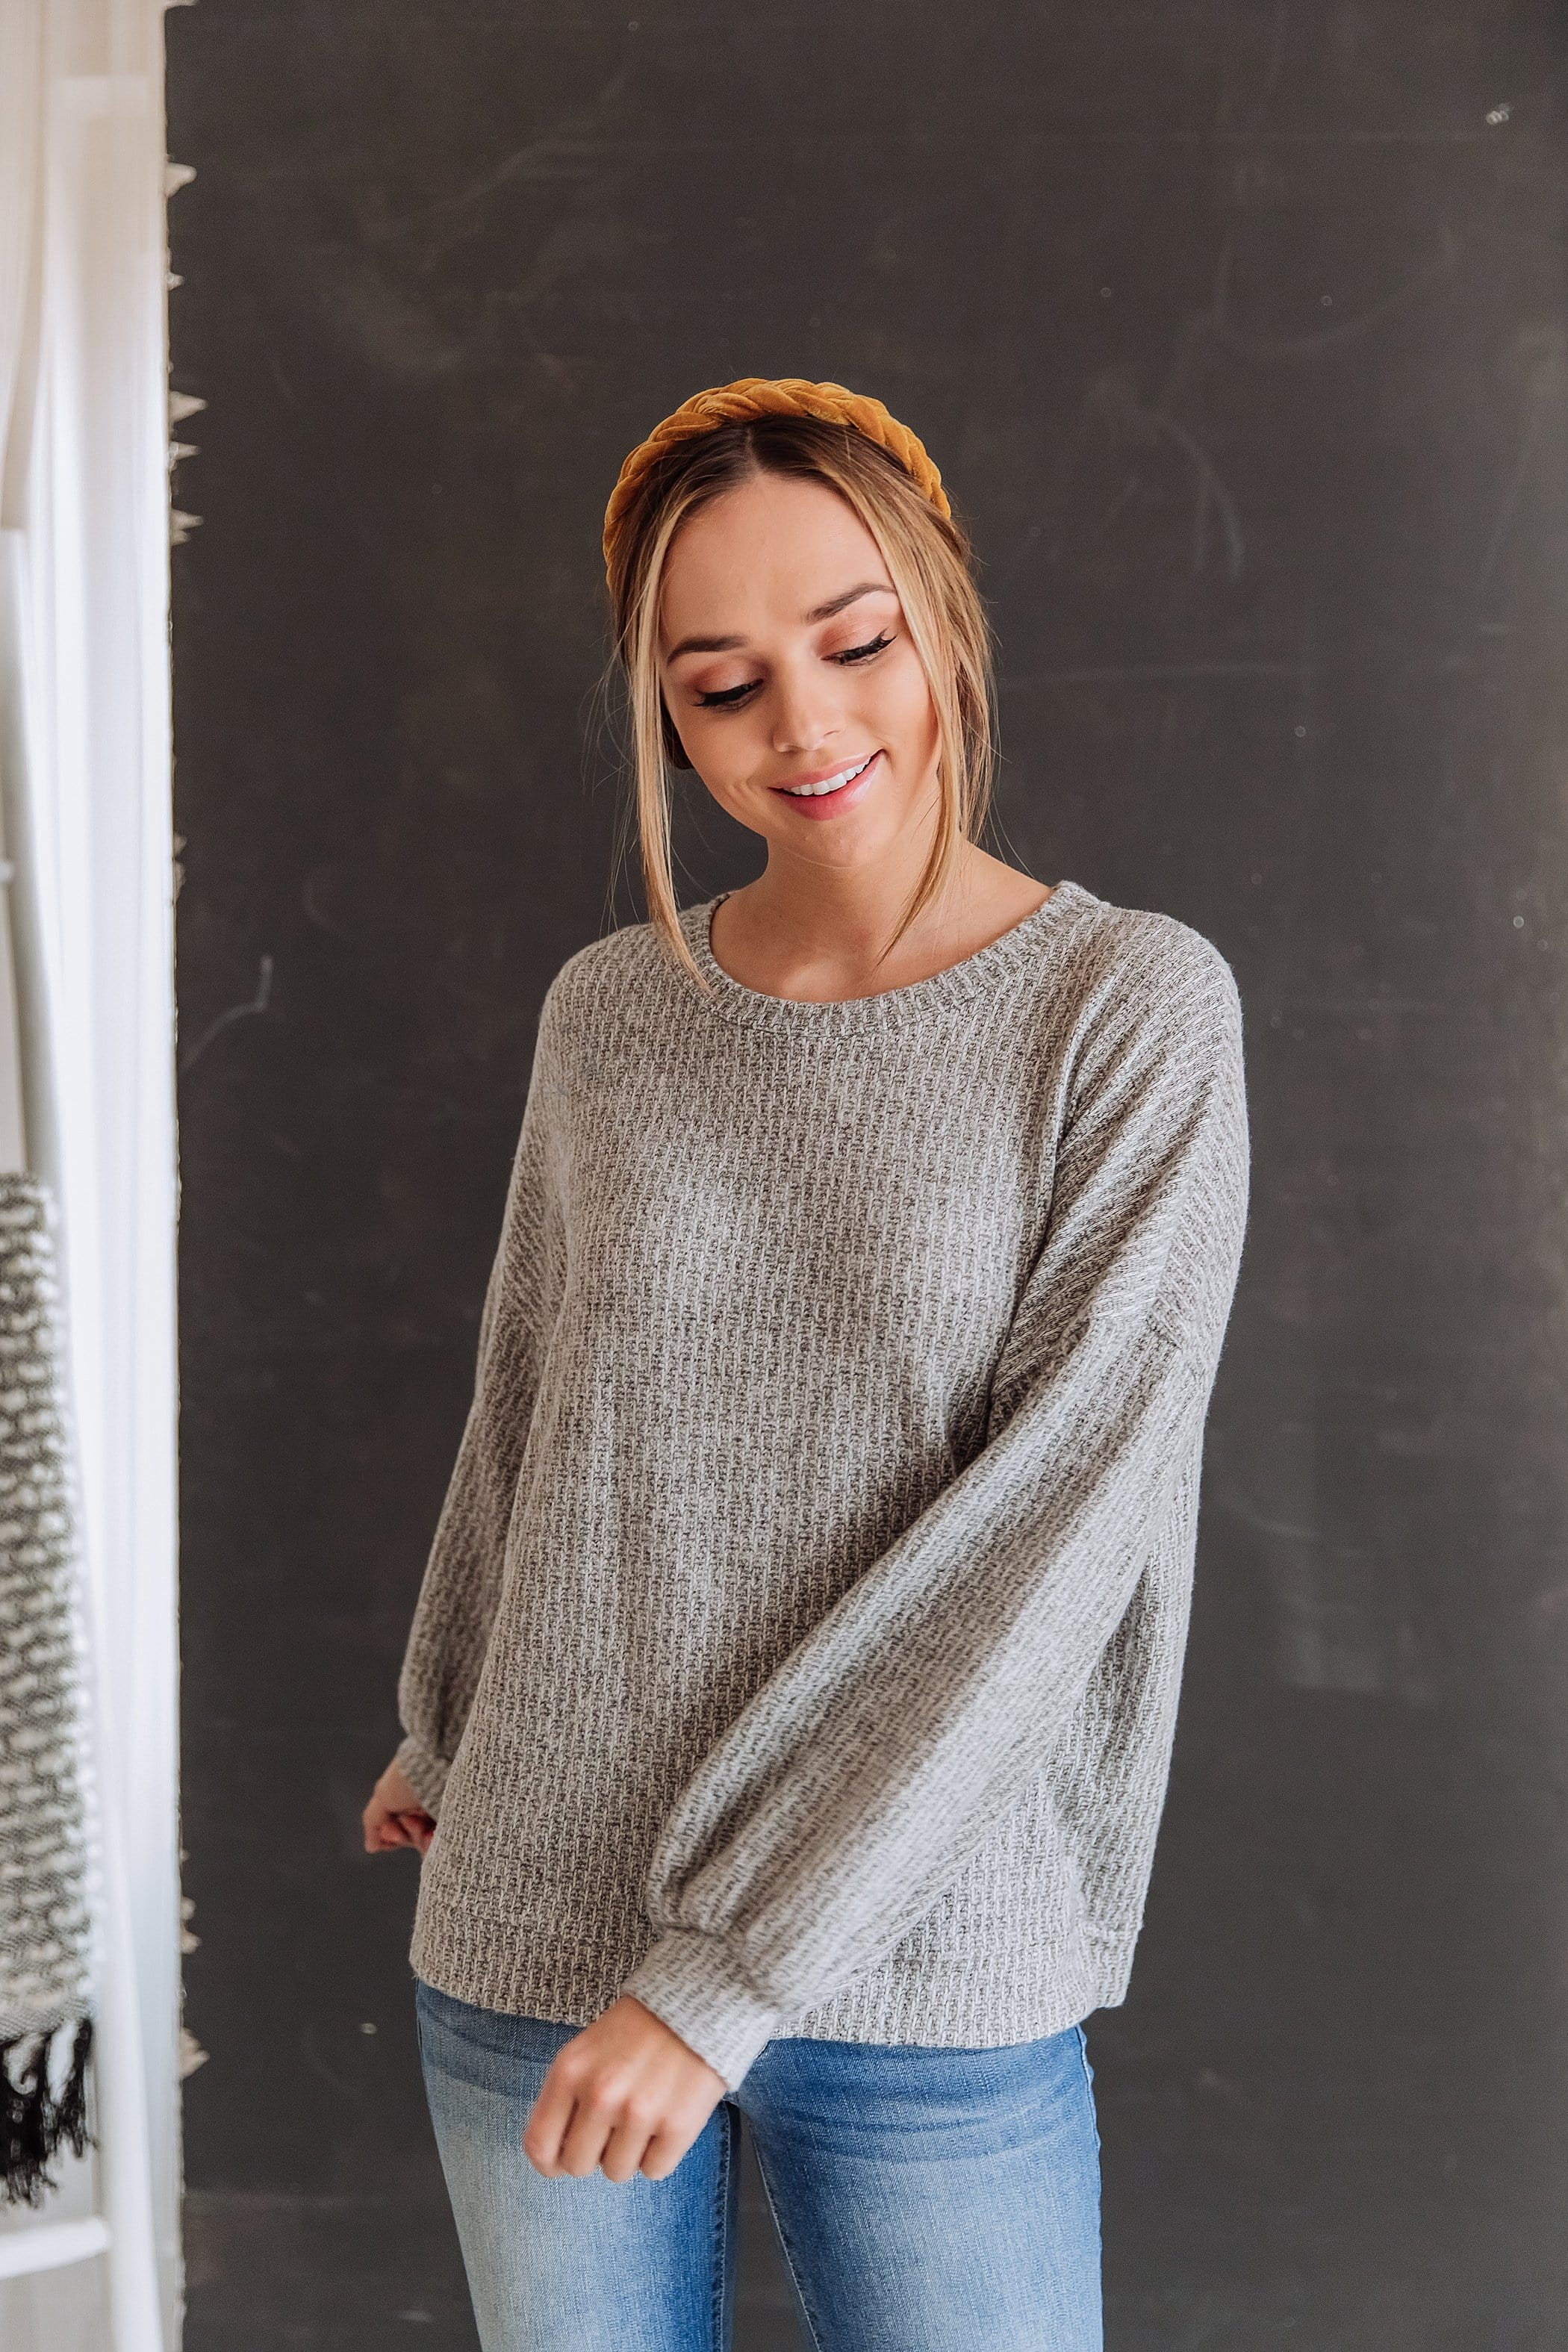 The Dasher Knit Sweater in Grey